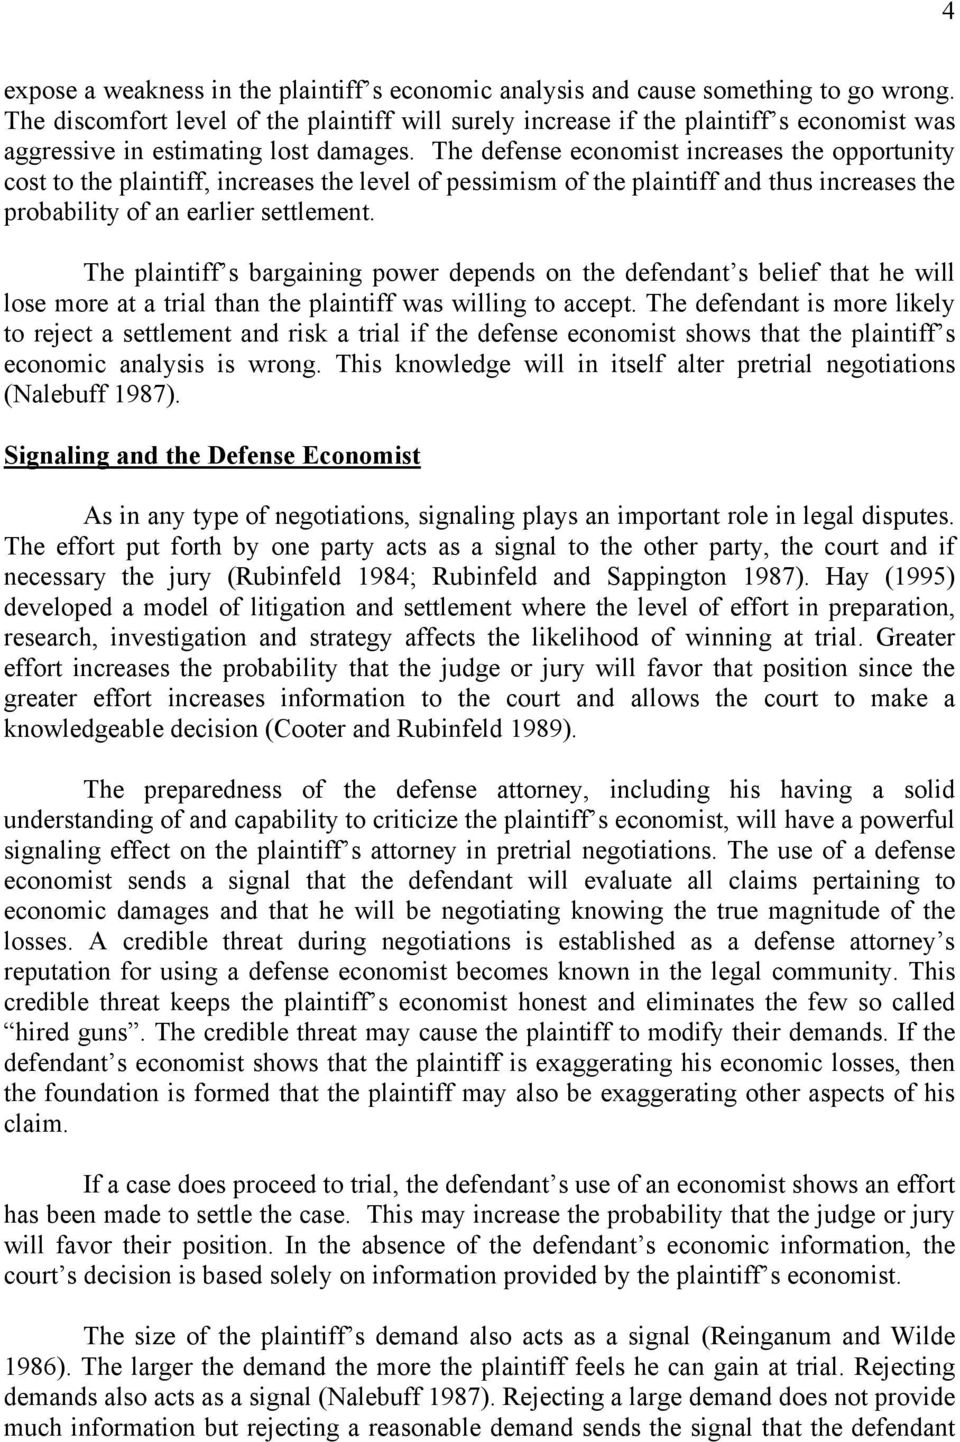 The defense economist increases the opportunity cost to the plaintiff, increases the level of pessimism of the plaintiff and thus increases the probability of an earlier settlement.